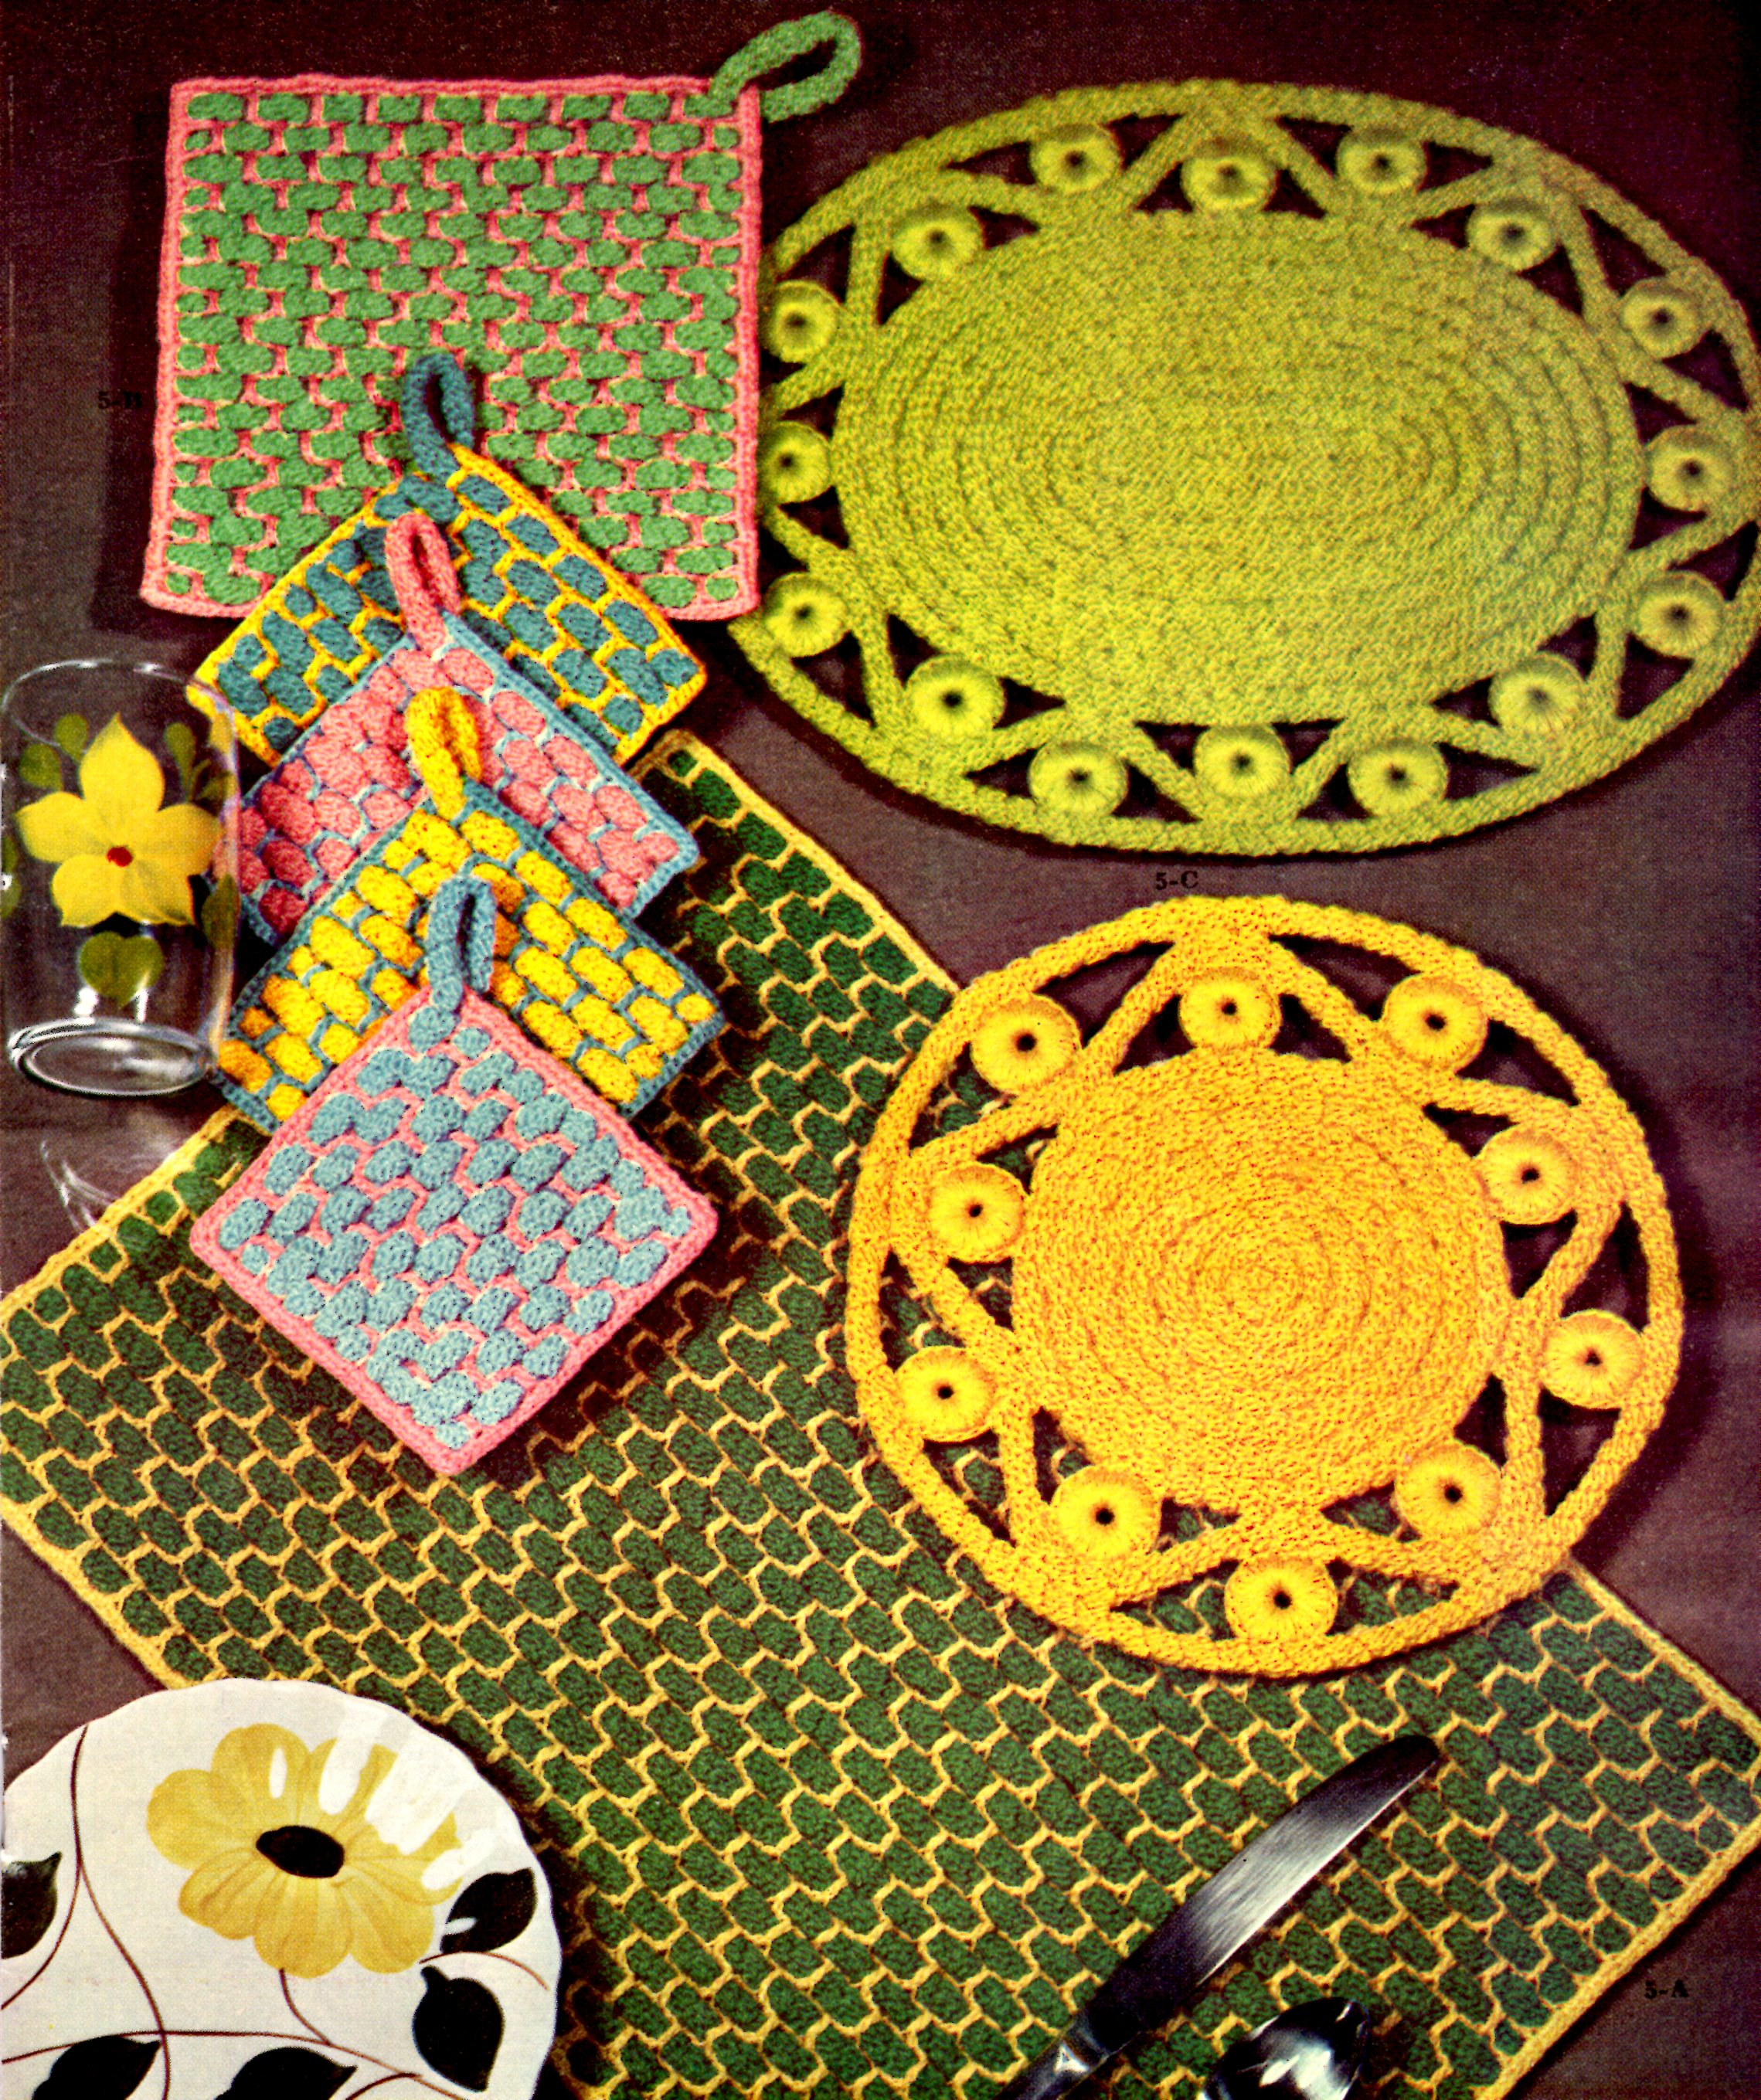 Vintage Crochet Rope Craft Placemat And Hot Plate Patterns Vintage